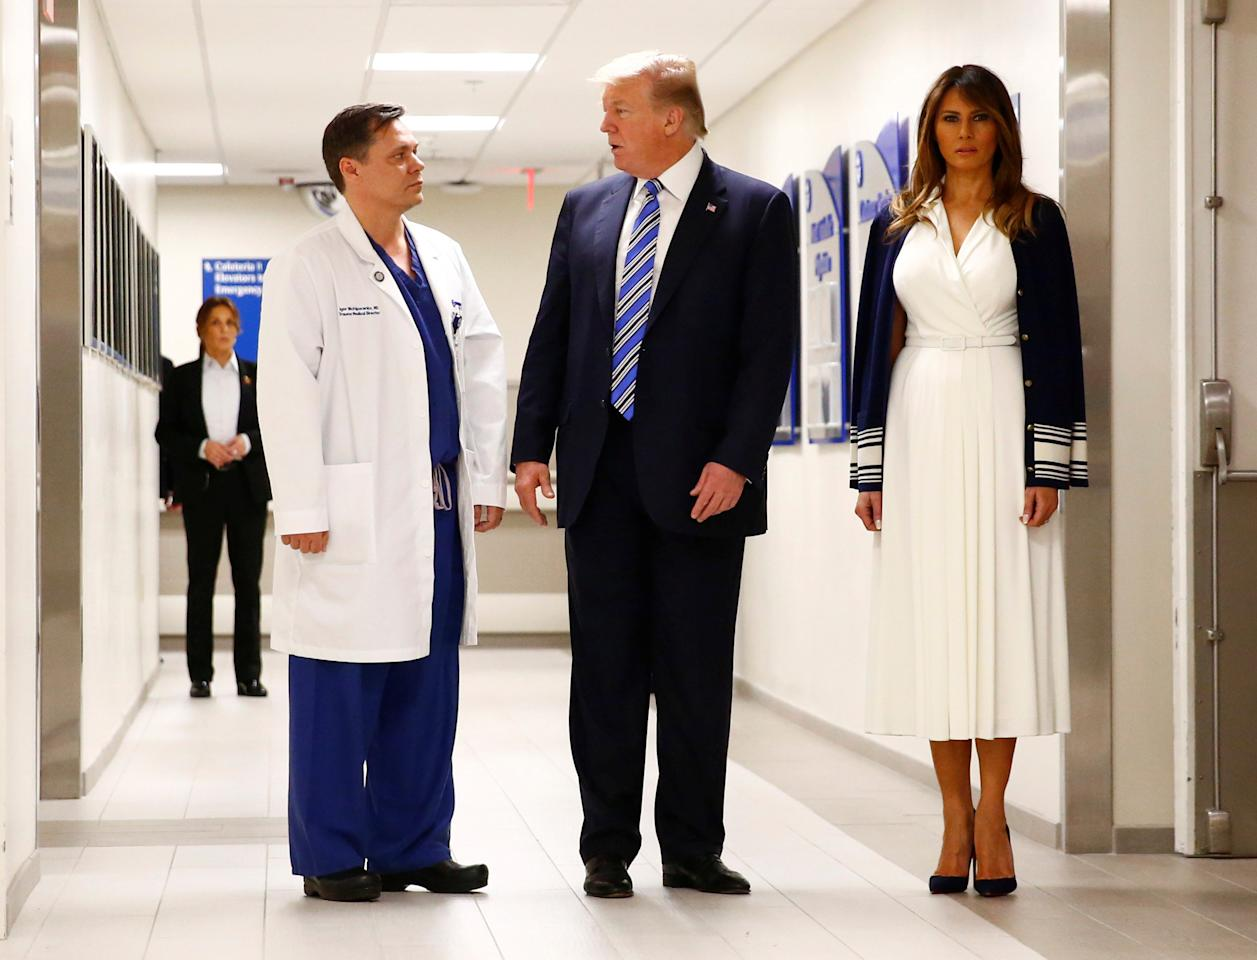 U.S. President Donald Trump and first lady Melania Trump visit with Dr. Igor Nichiporenko, trauma surgeon at Broward Health North Hospital in the wake of the shooting at Marjory Stoneman Douglas High School in Pompano Beach, Florida, U.S., February 16, 2018. REUTERS/Eric Thayer